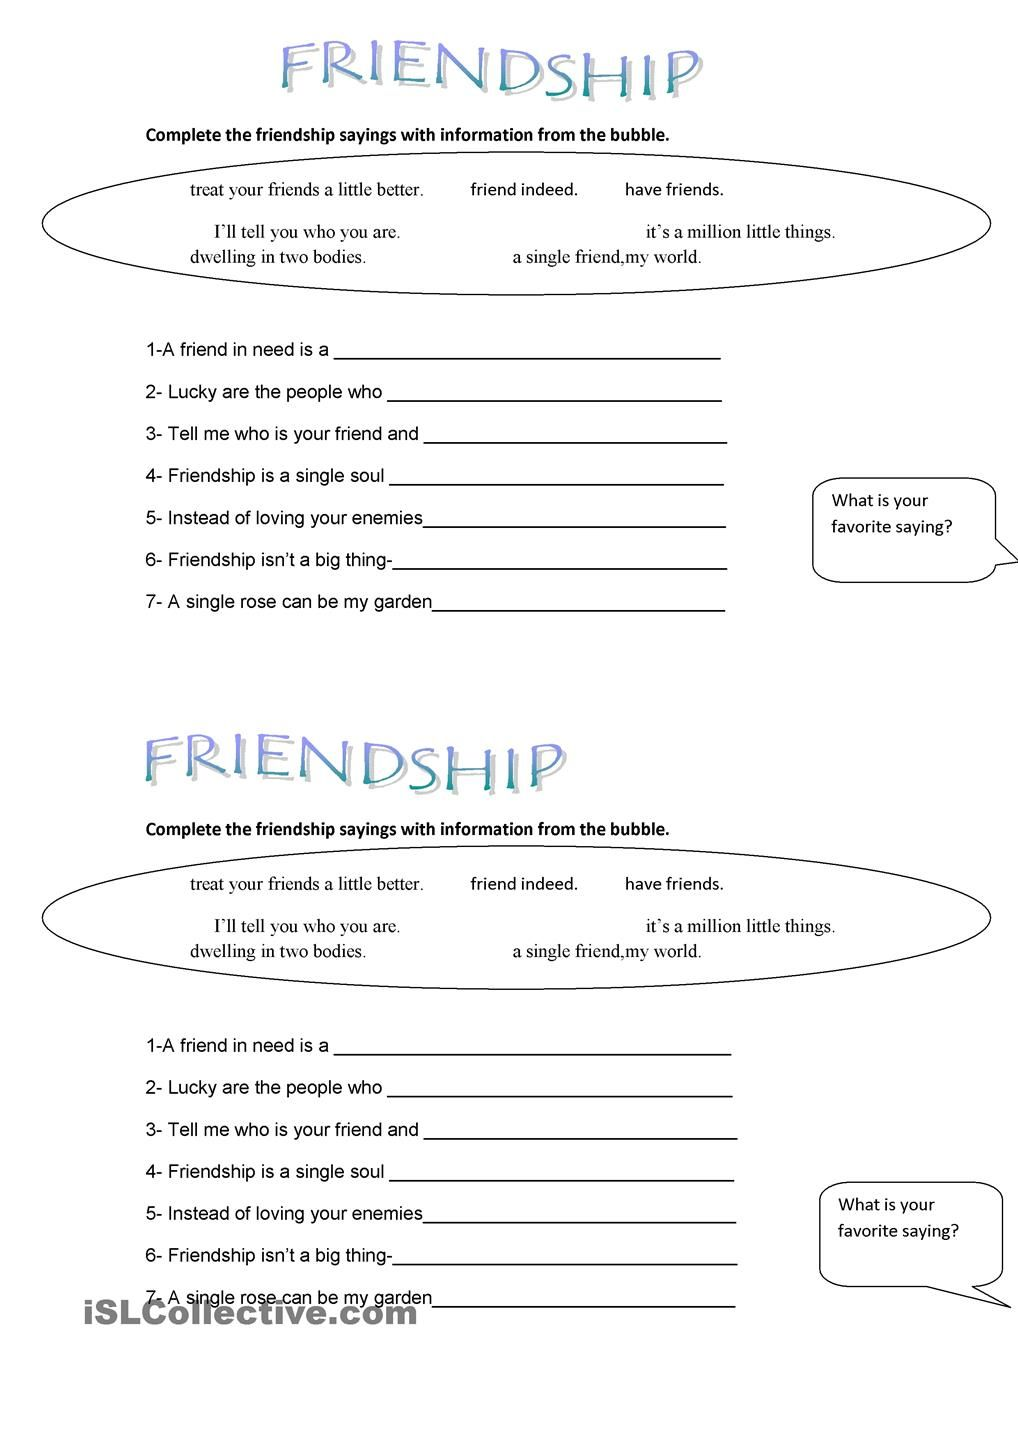 FRIENDSHIP SAYINGS | ISLCOLLECTIVE MATERIALS | Pinterest ...